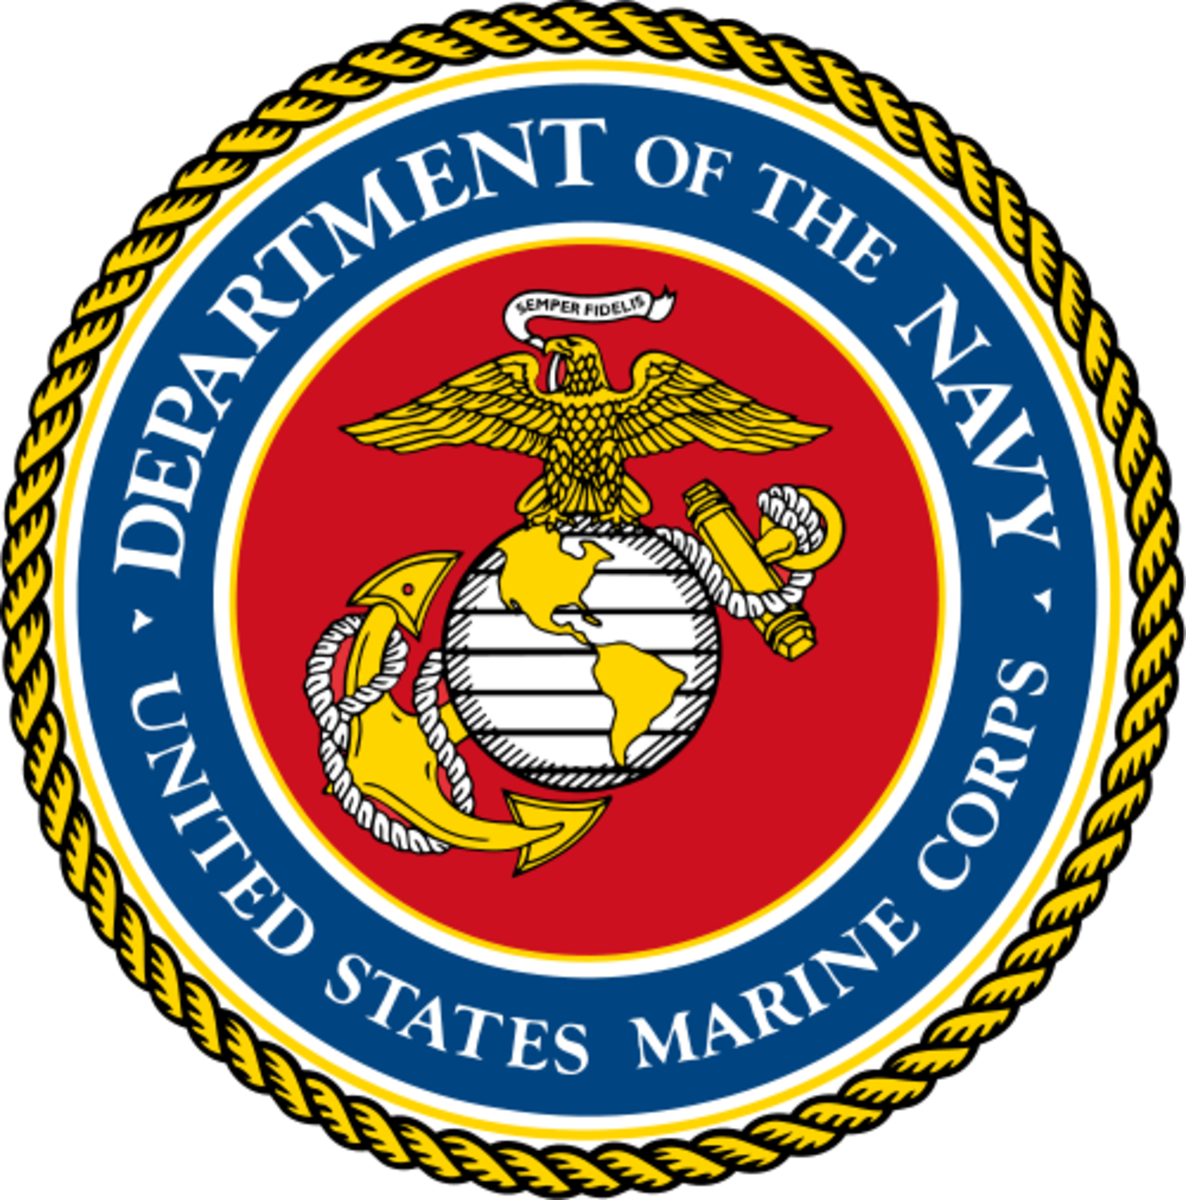 President Eisenhower signed an executive order on this date in 1954 formally adopting the Marine Corps' seal.